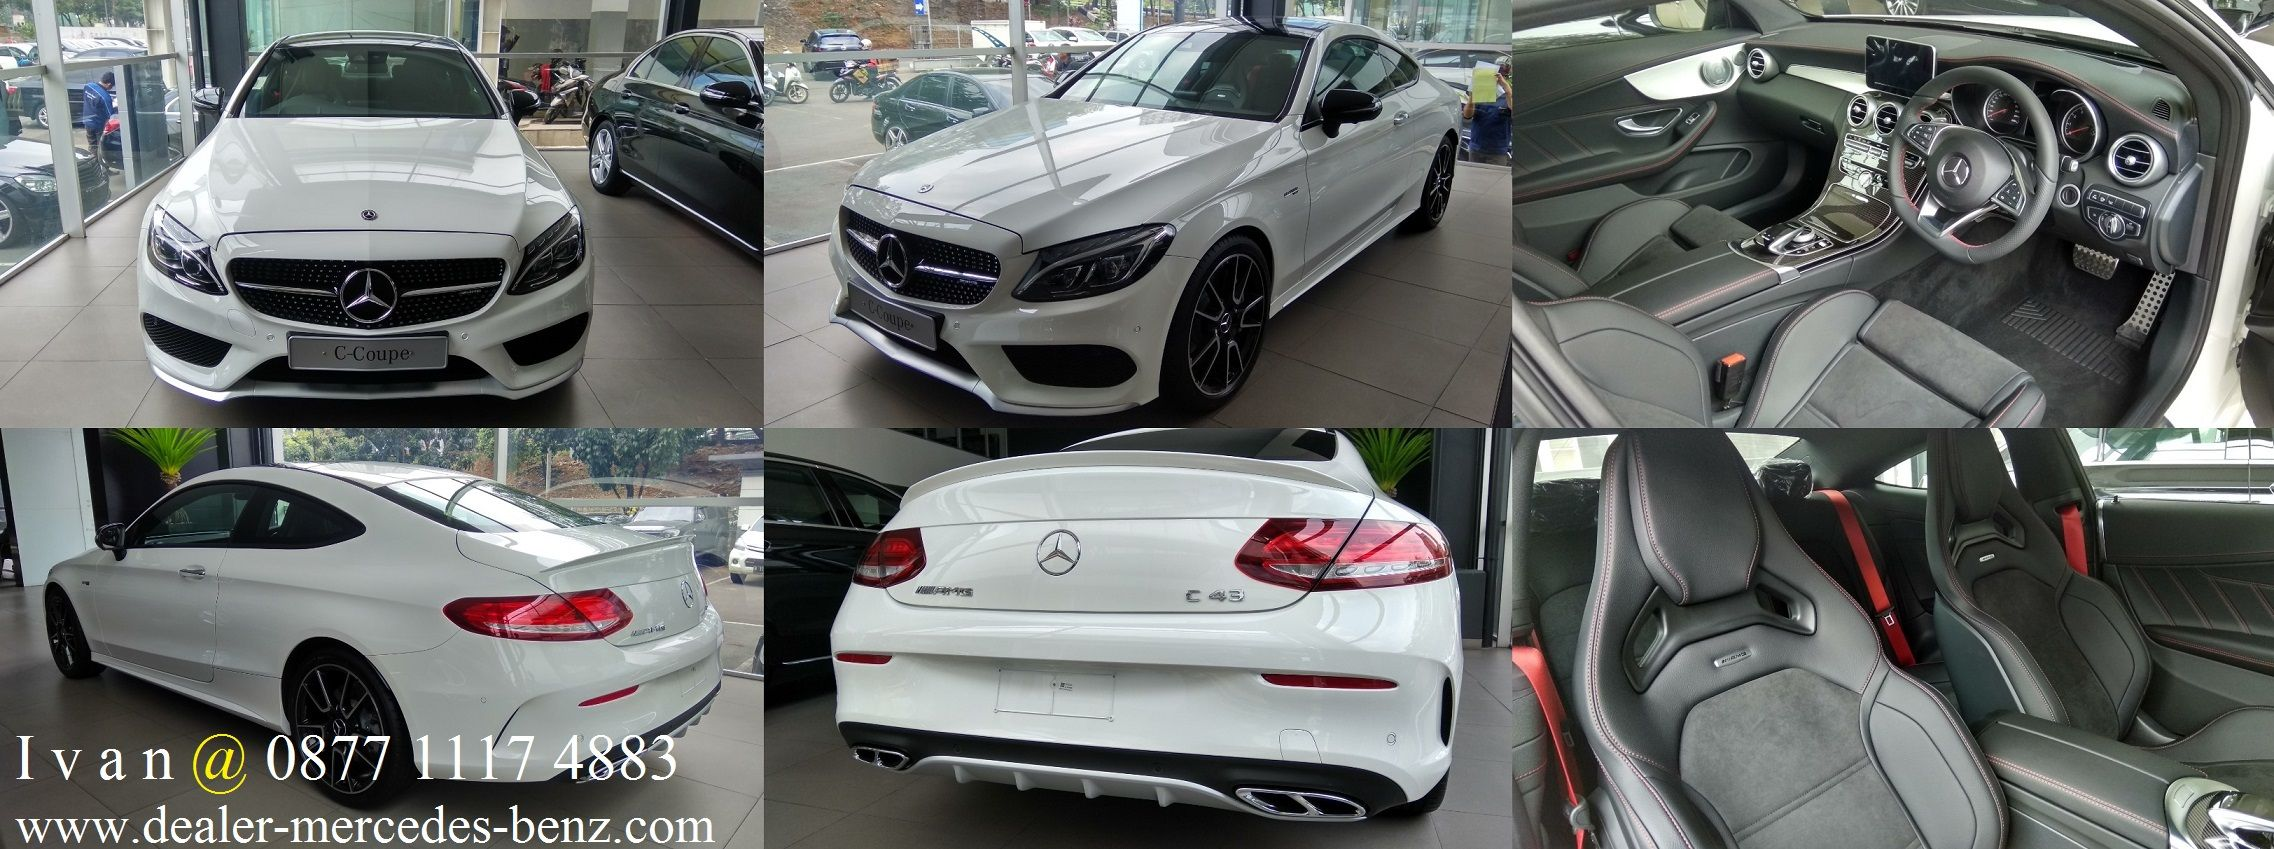 CClass C43 AMG Coupe 2017 Indonesia Dealer Mercedes